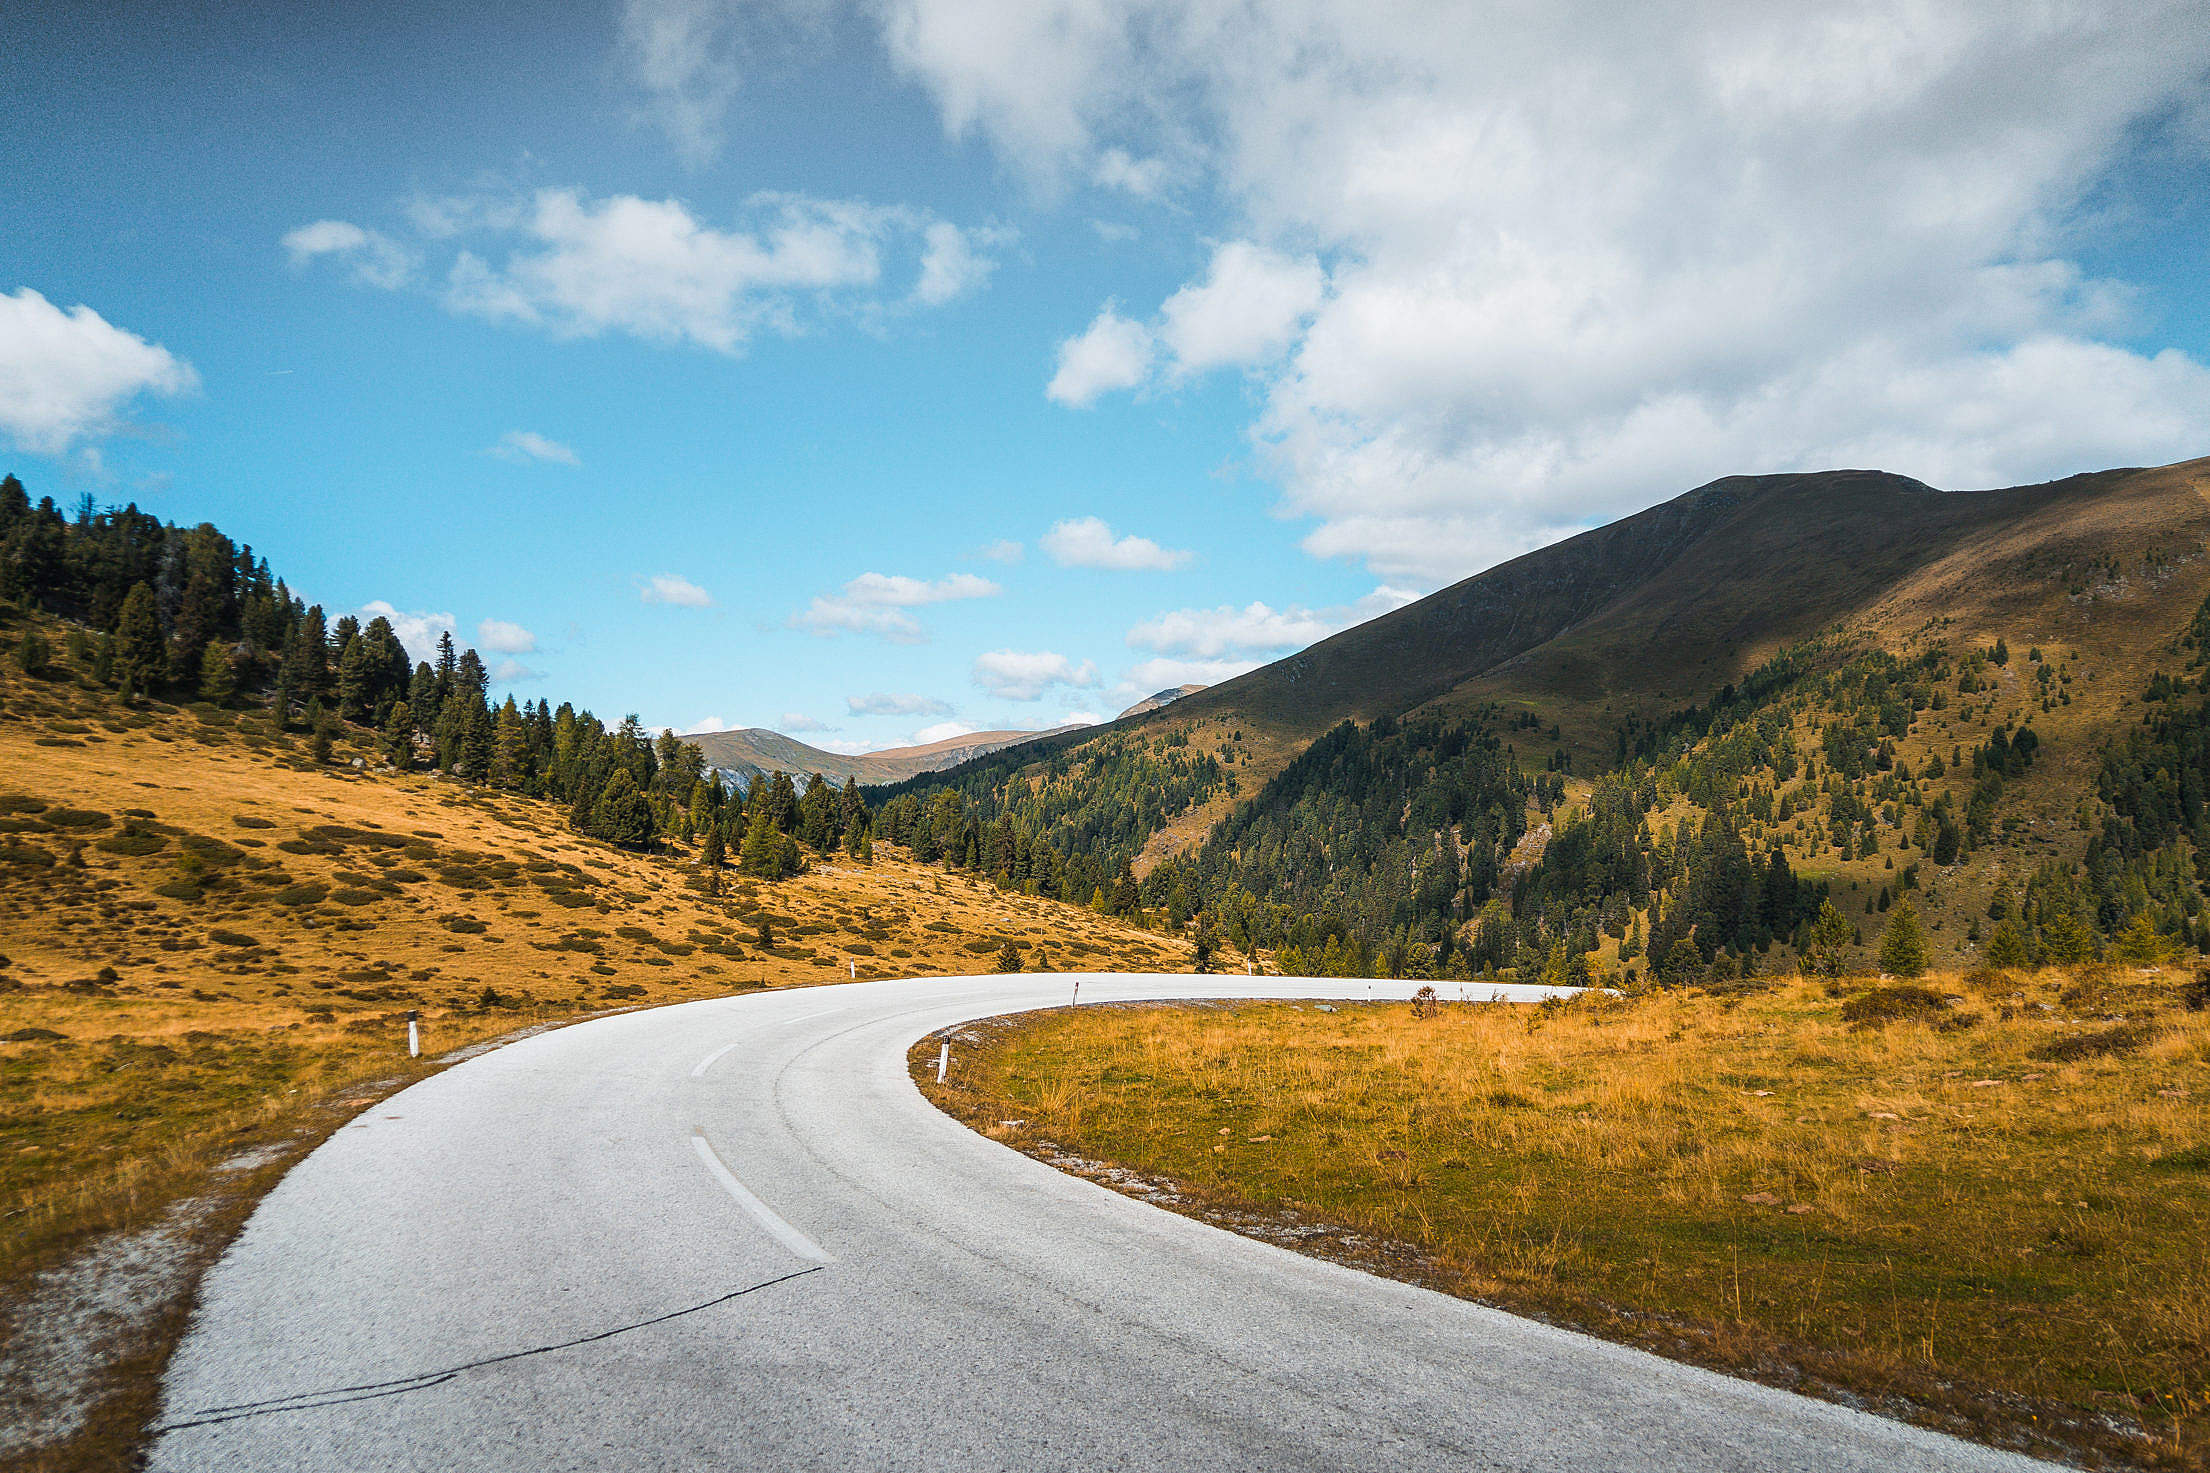 Download Empty Road in Austrian Mountains Free Stock Photo